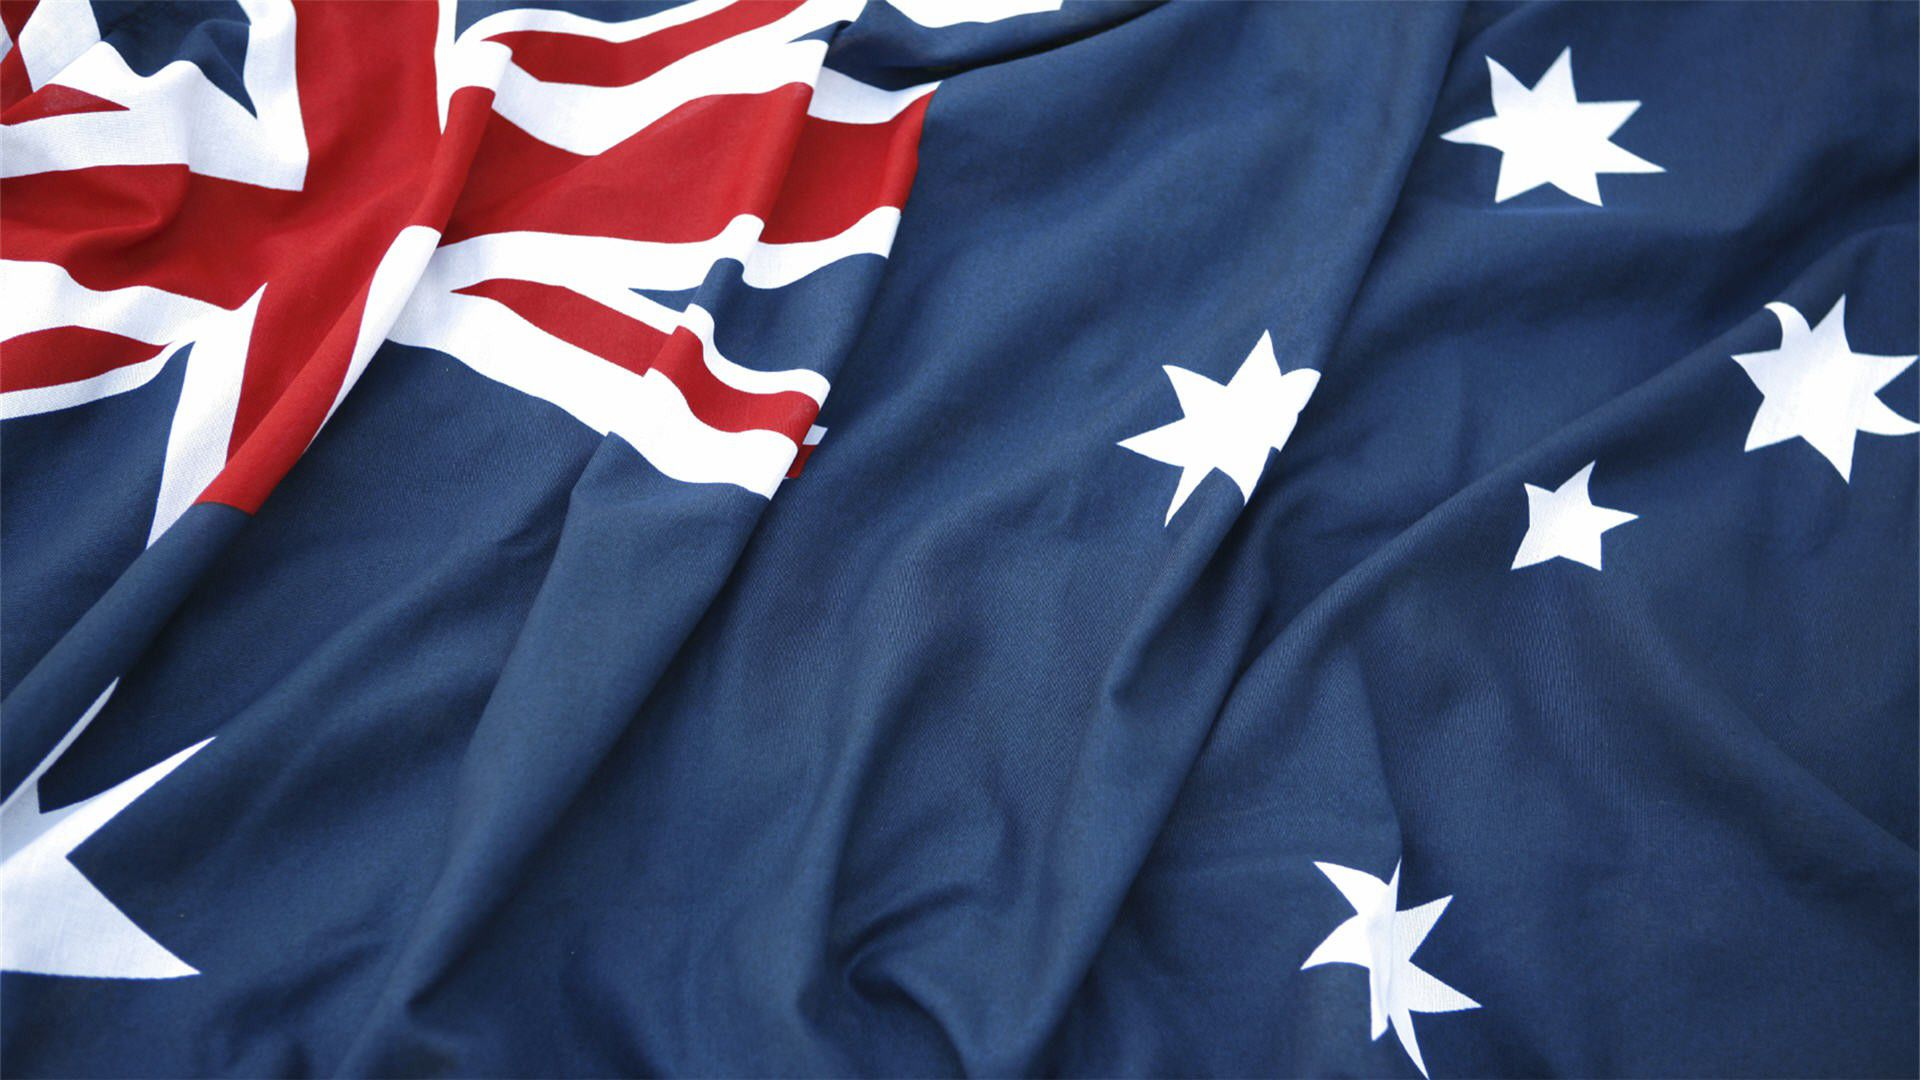 australia flag wallpaper backgroung hd pic